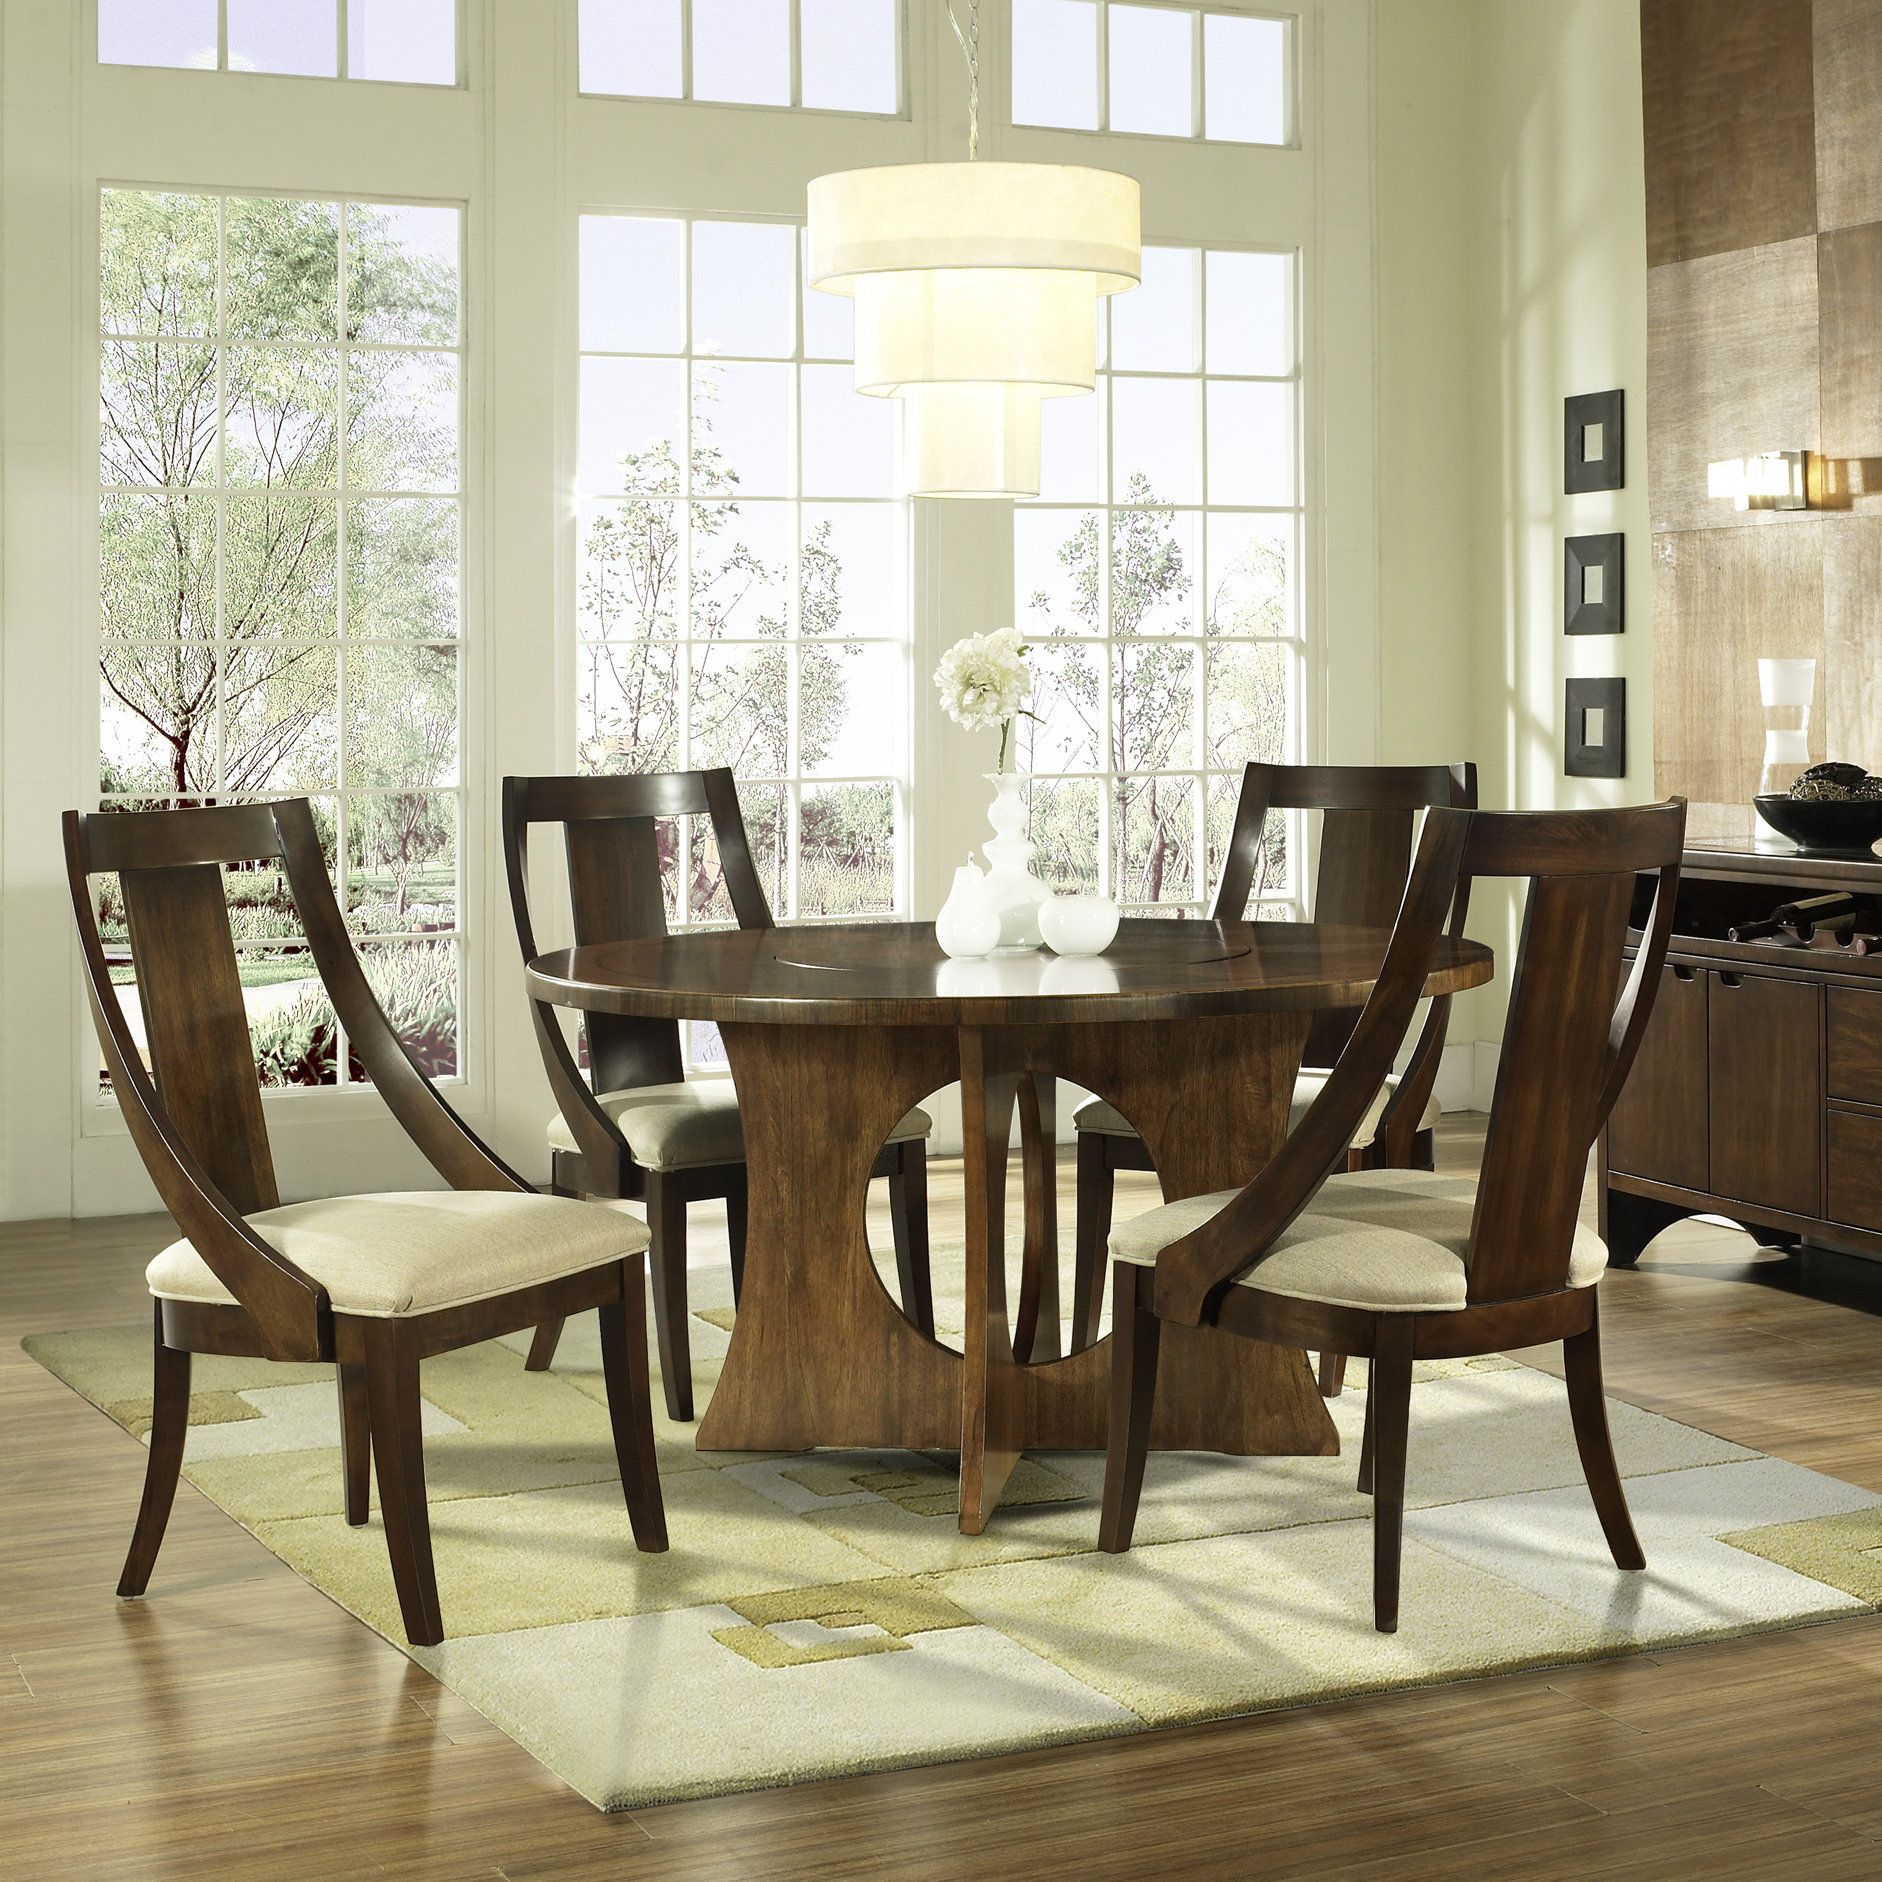 Fabulous Somerton Dining Table Products Dining Table In Kitchen Download Free Architecture Designs Grimeyleaguecom